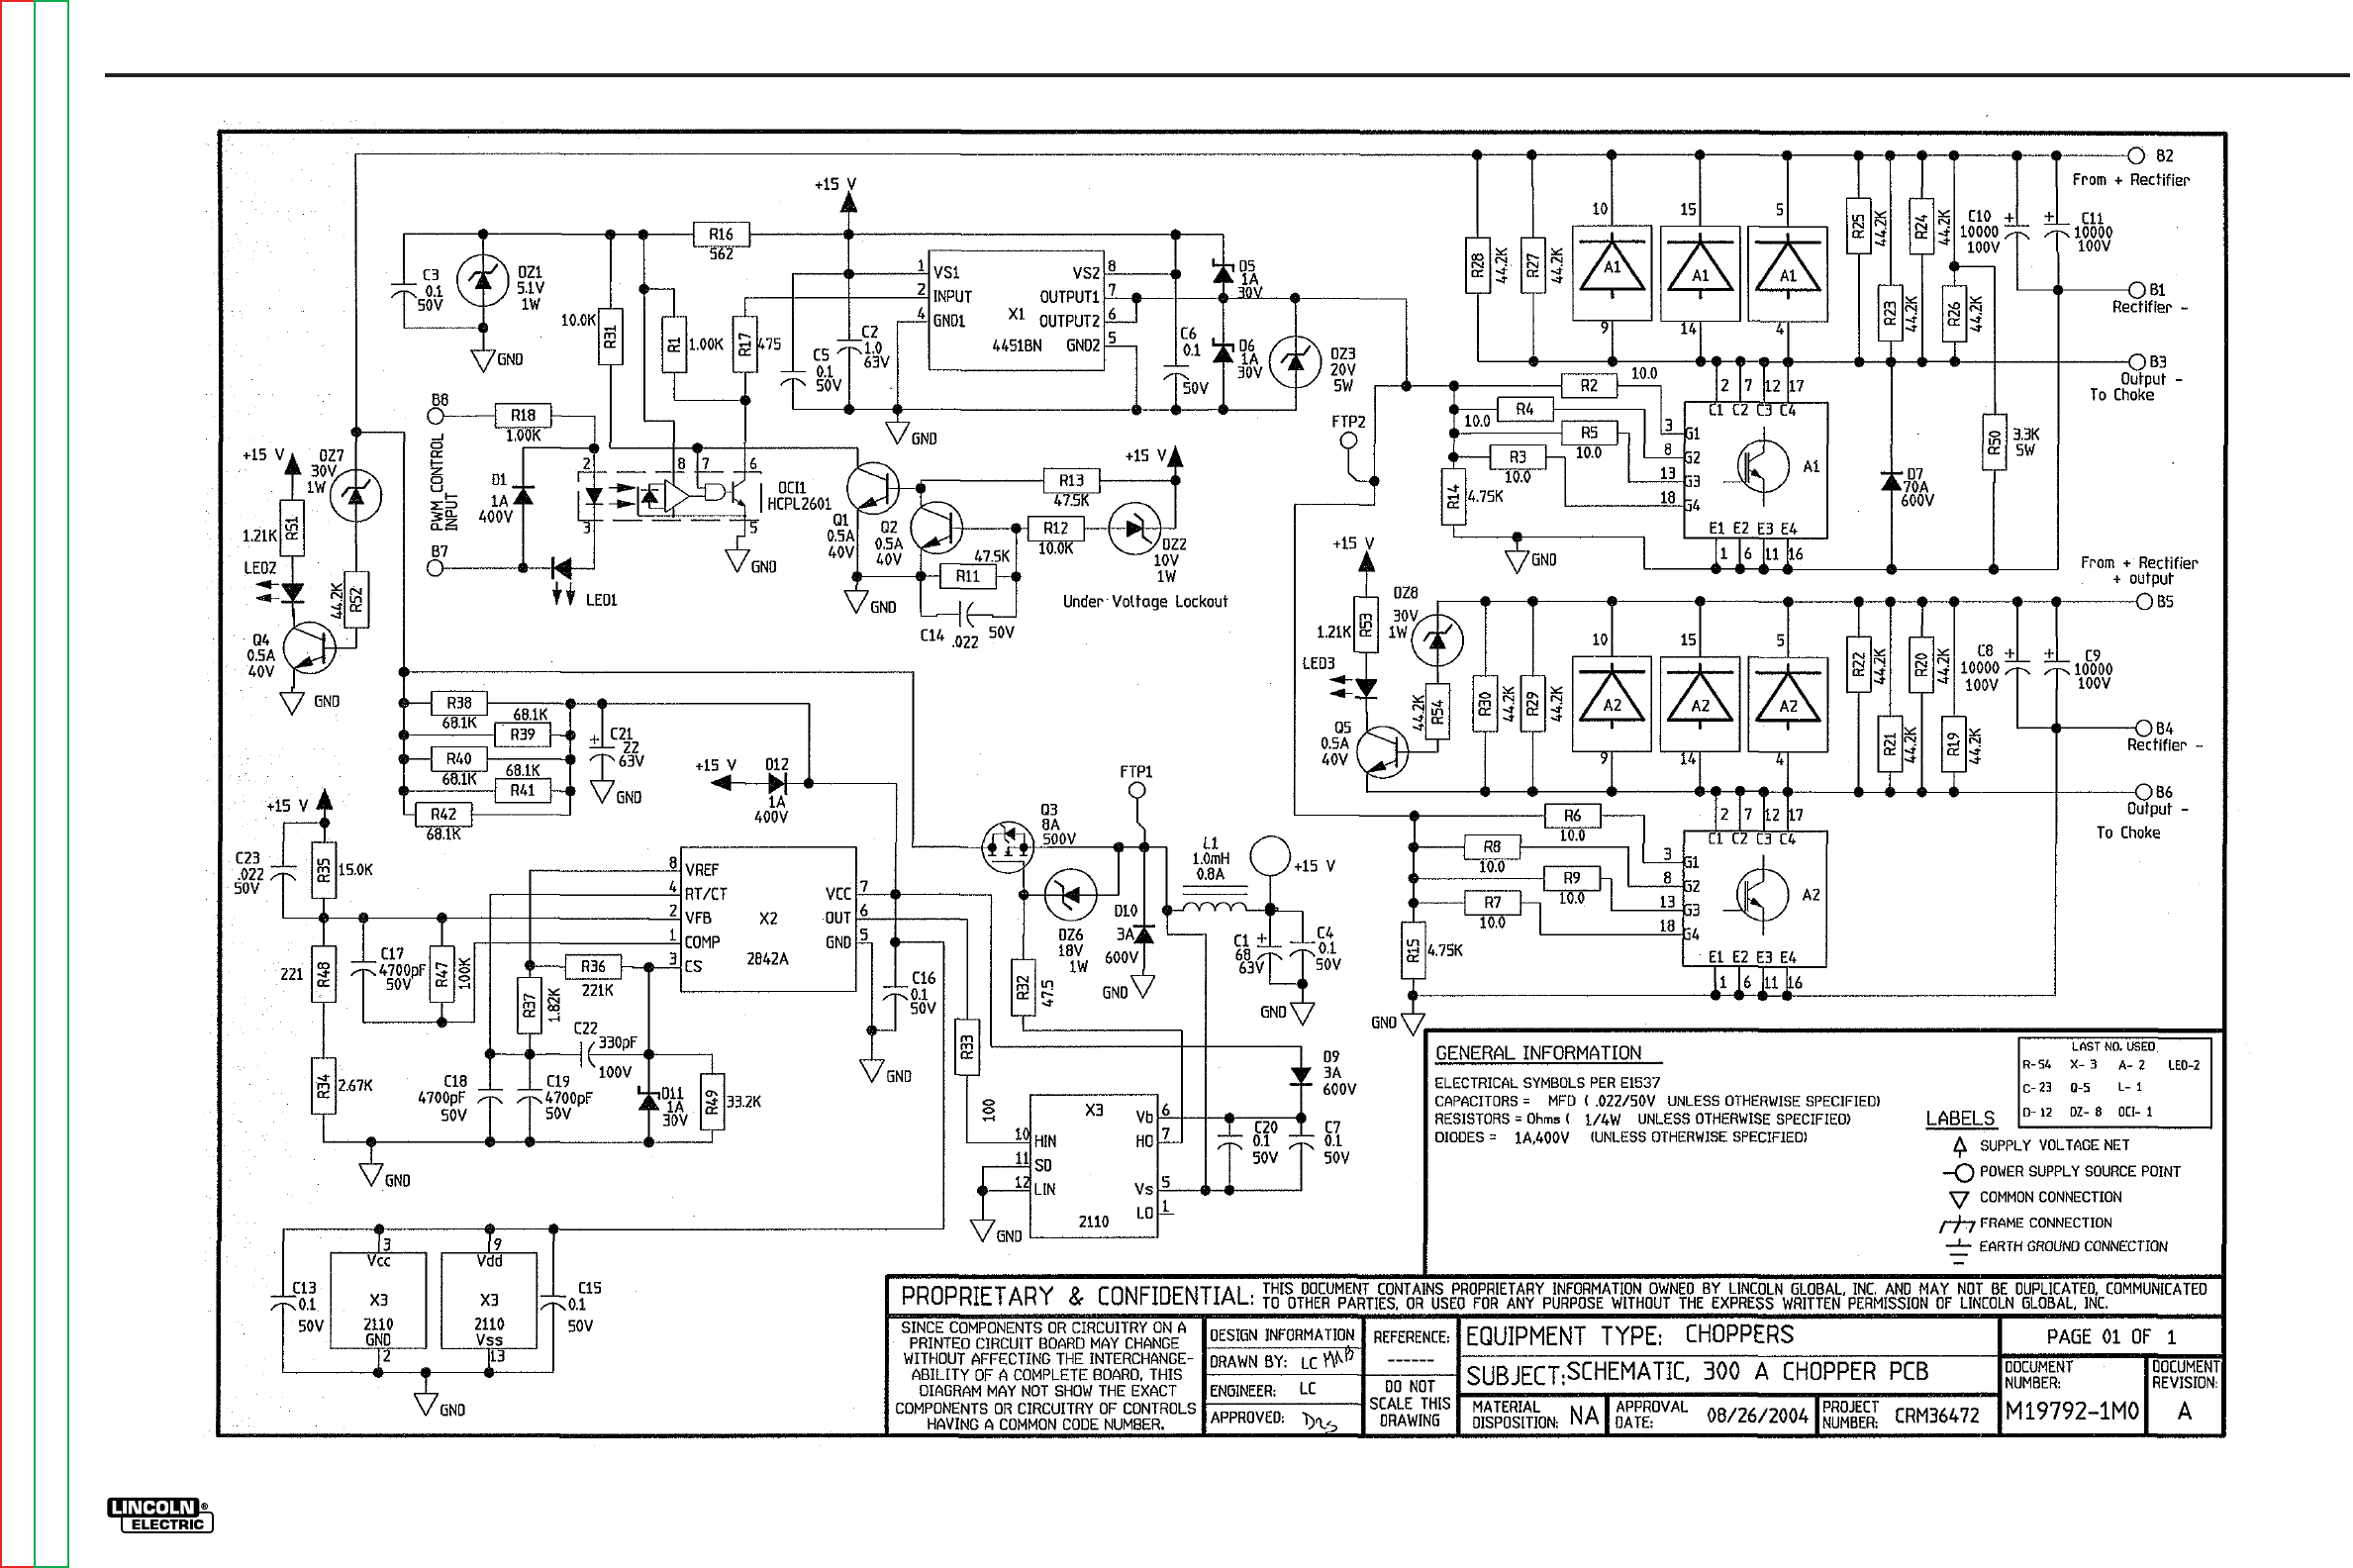 Lincoln Sa 200 Wiring Schematic : 31 Wiring Diagram Images